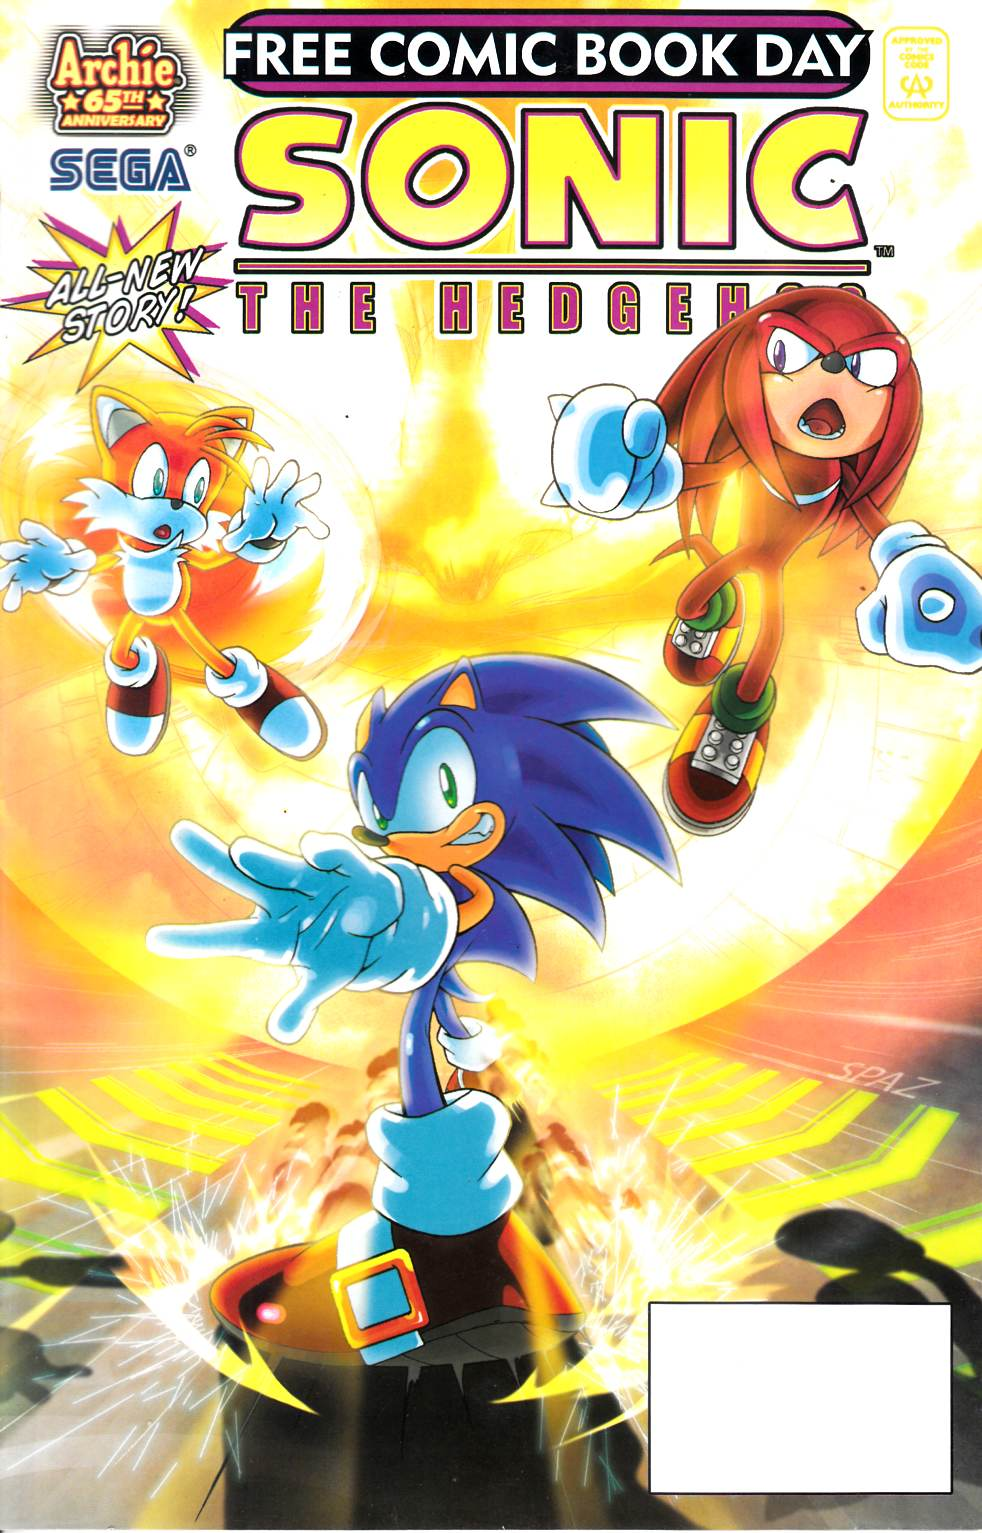 Sonic The Hedgehog FCBD 2007 (One Shot) Very Good (4.0) [Archie Comic] THUMBNAIL